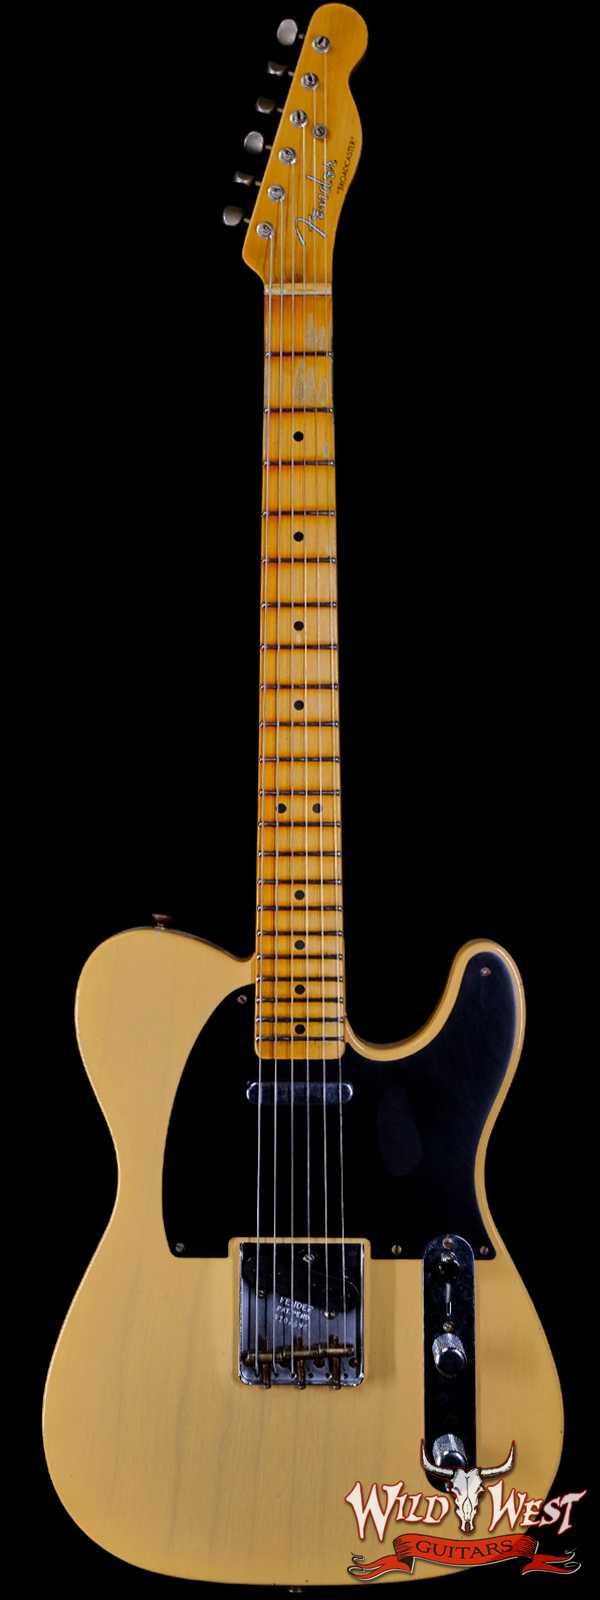 Fender Custom Shop Limited Edition 70th Anniversary Broadcaster (Telecaster) Journeyman Relic Nocaster Blonde R108696